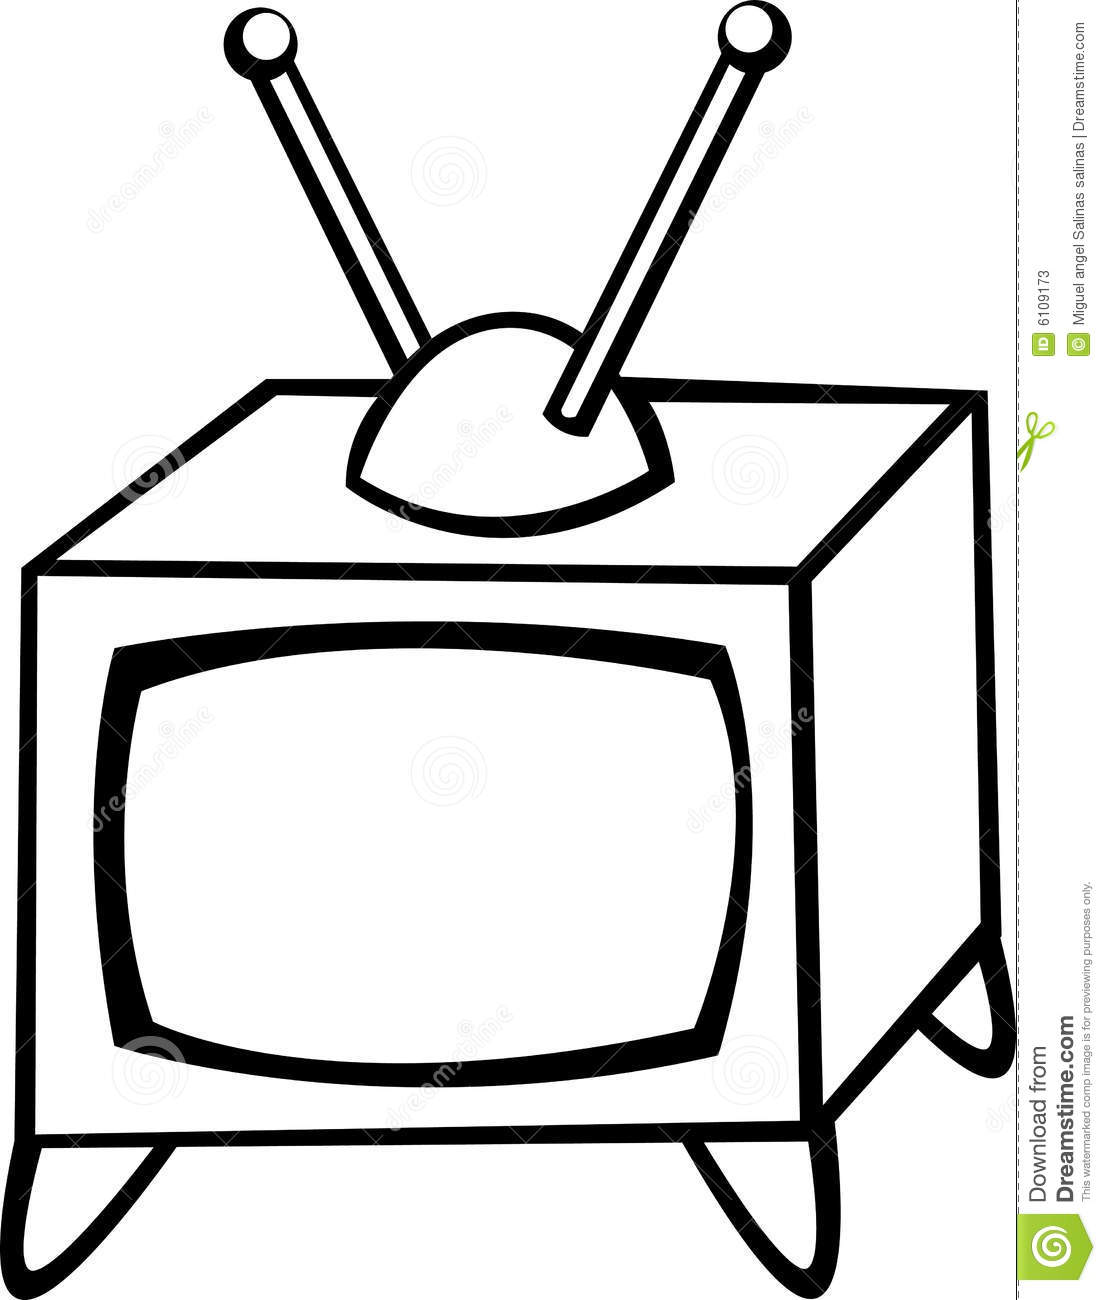 Antique Television Vector Illustration Stock Vector